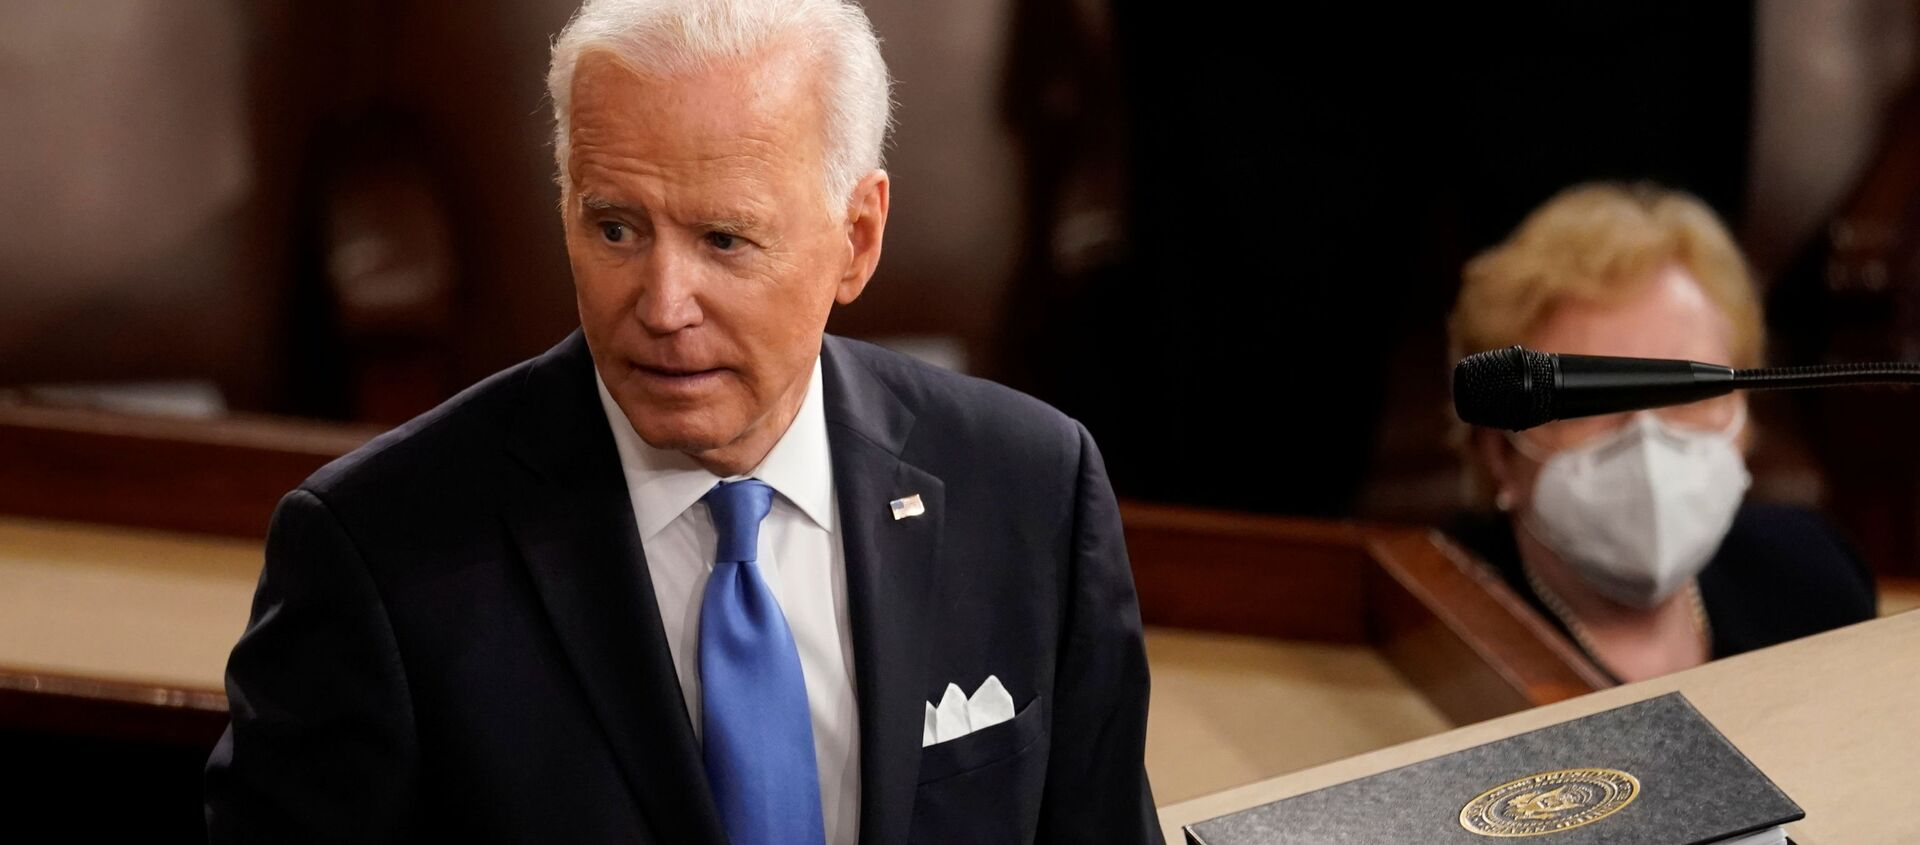 US President Joe Biden turns from the podium after speaking to a joint session of Congress in the House chamber of the US Capitol in Washington, DC, 28 April 2021.  - Sputnik International, 1920, 29.04.2021